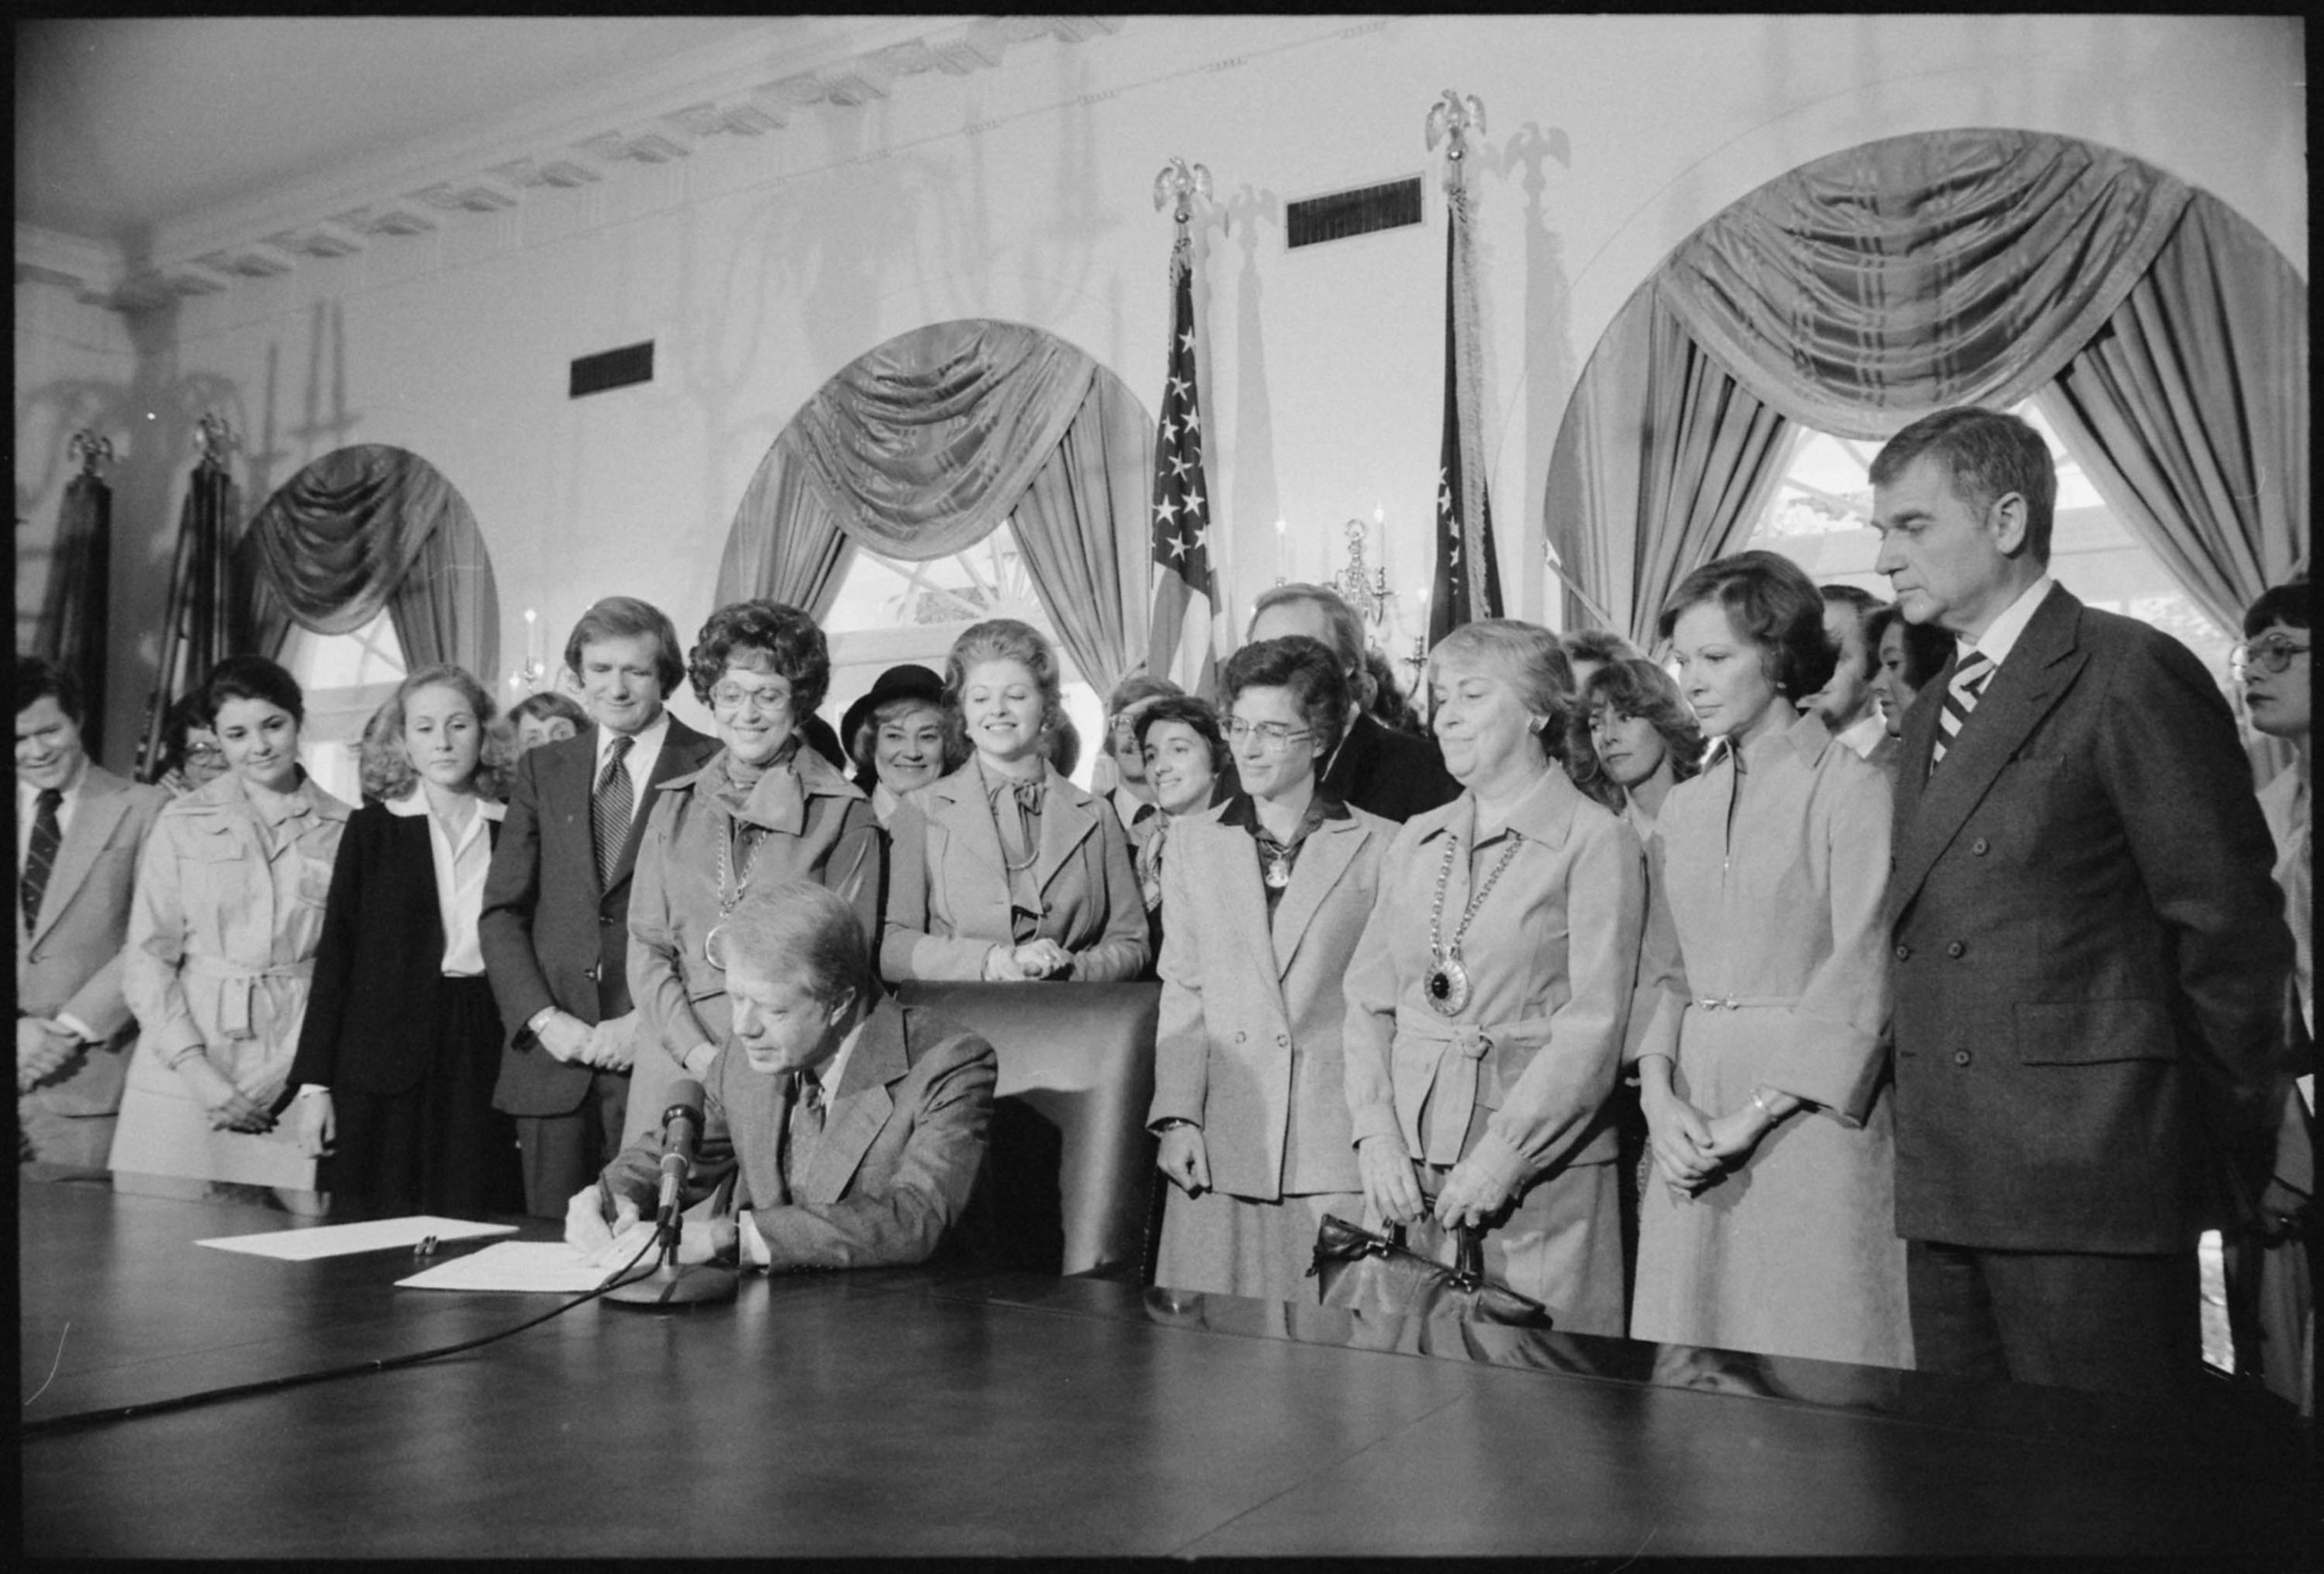 Pres. Jimmy Carter Signing Extension of Equal Rights Amendment (ERA) Ratification on October 20, 1978. Despite the 1982 deadline, many in Congress are working to extend it to allow for new ratifications from states.